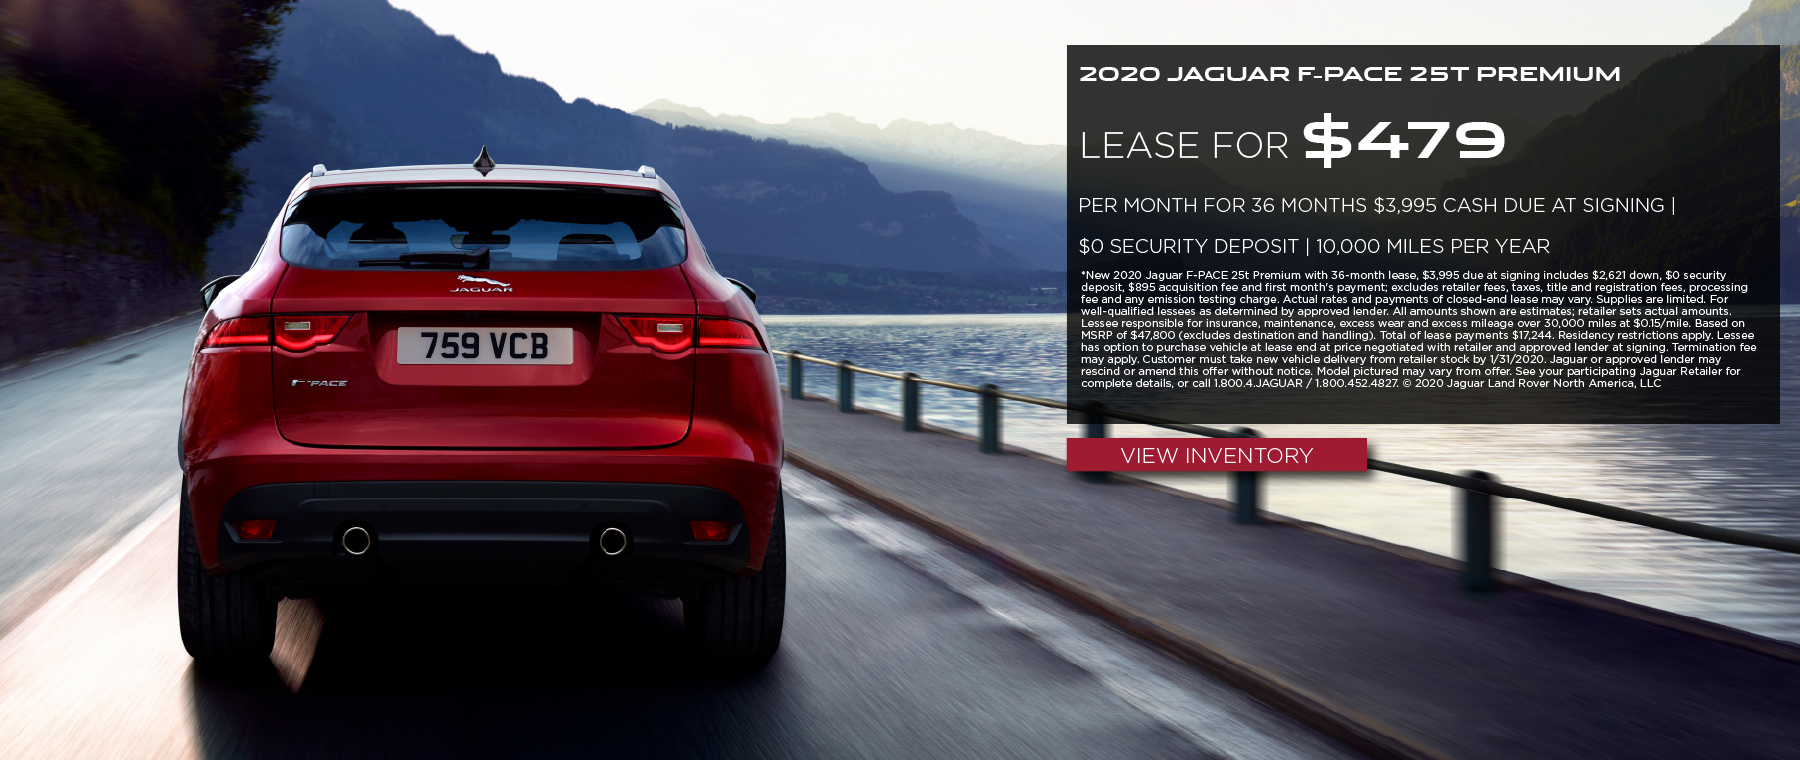 2020 JAGUAR F-PACE 25T PREMIUM LEASE FOR $479 PER MONTH FOR 36 MONTHS $3,995 CASH DUE AT SIGNING | $0 SECURITY DEPOSIT | 10,000 MILES PER YEAR | RED JAGUAR F-PACE DRIVING NEAR A RAILWAY AND LAKE